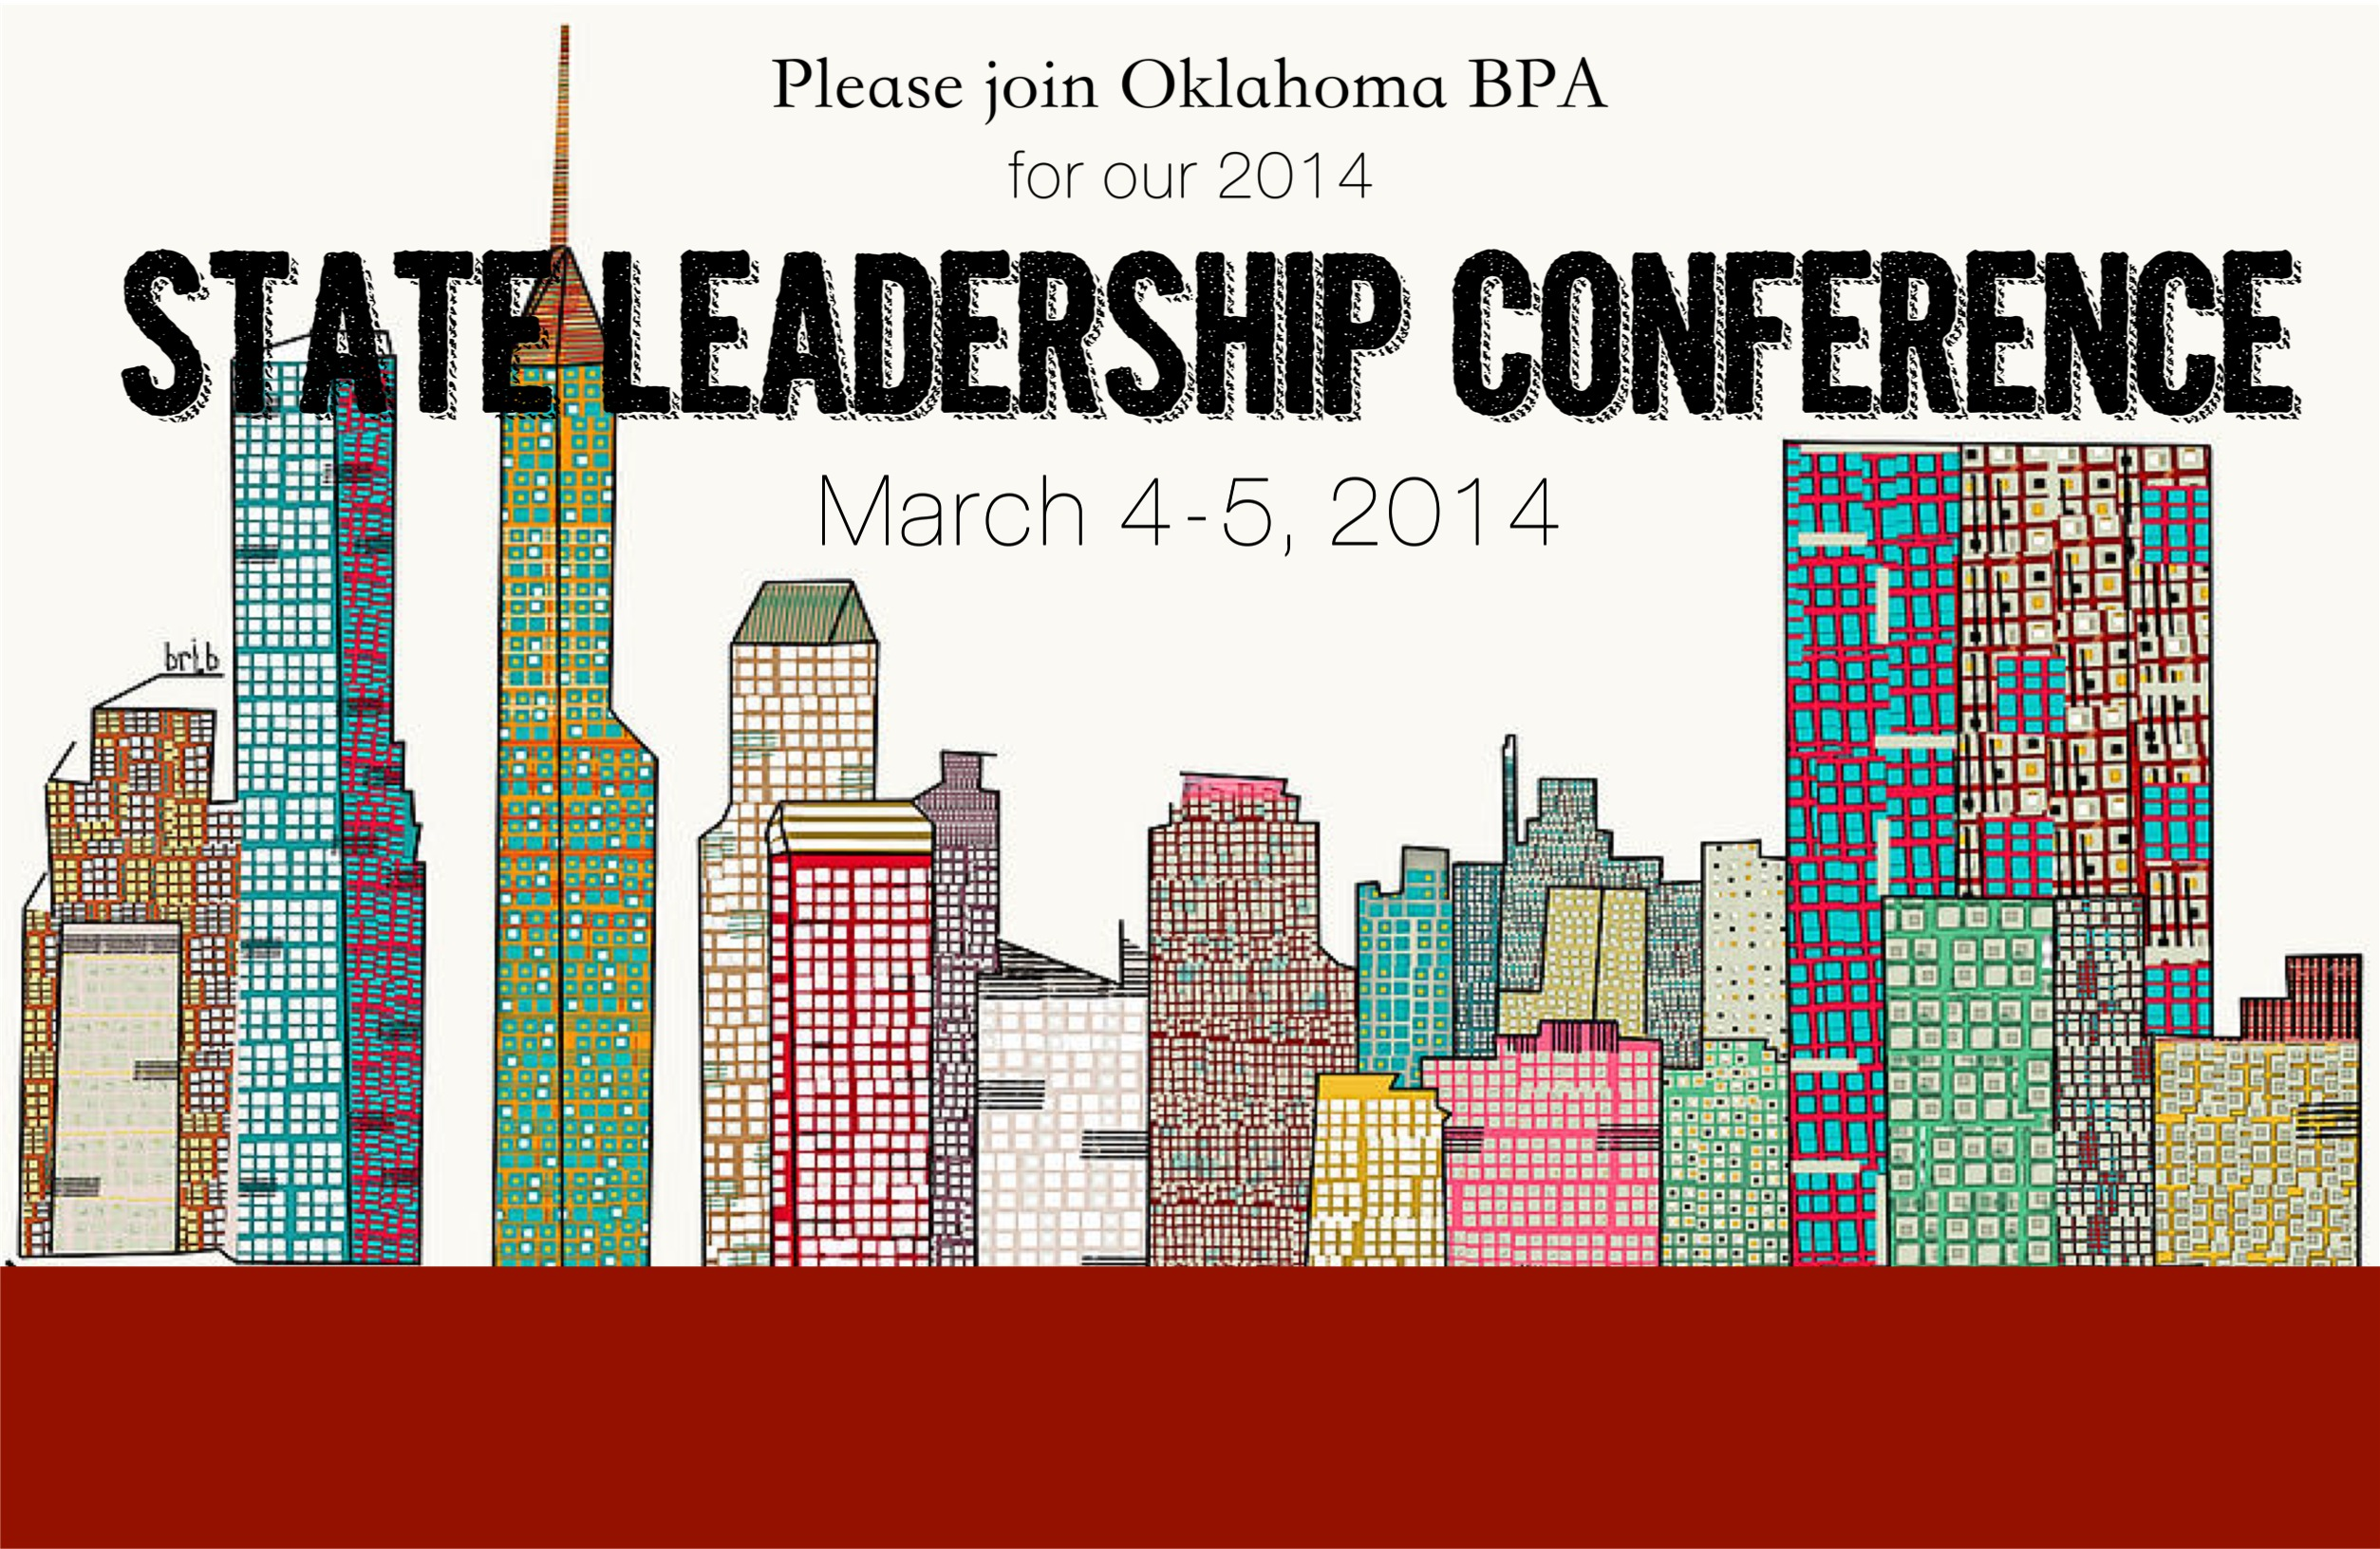 BPA Conference Invitation